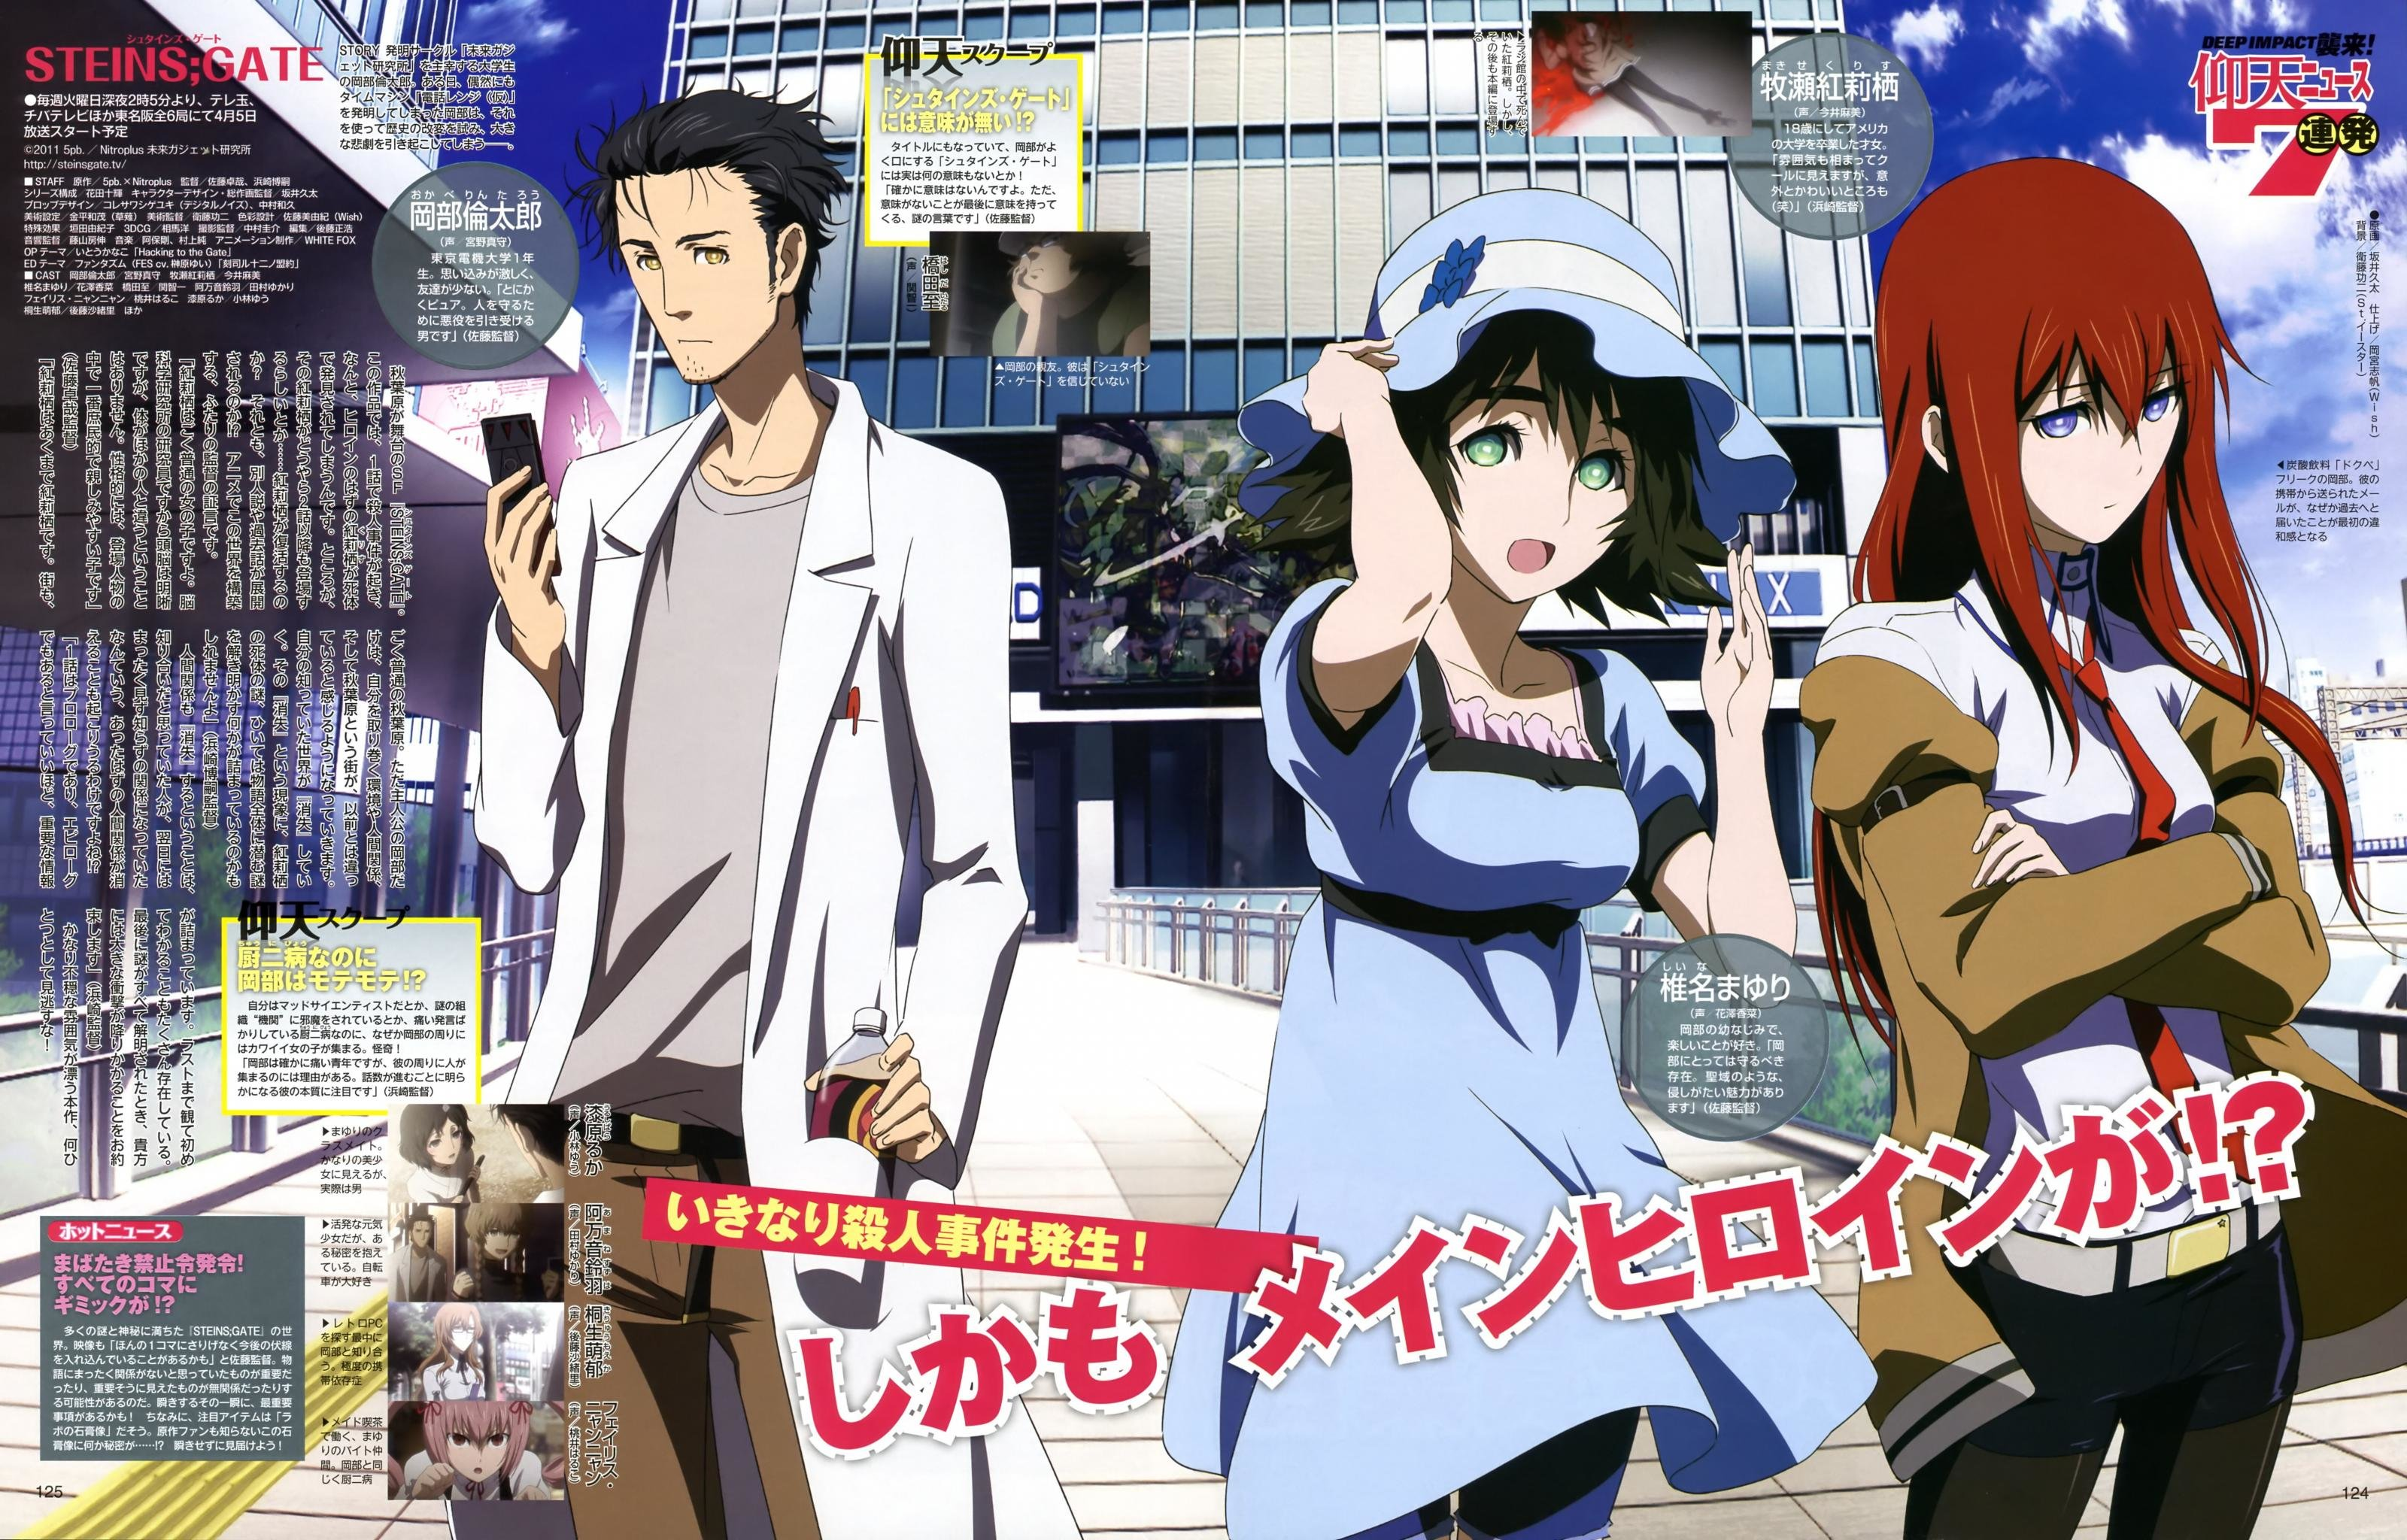 Download hd 3200x2048 Steins Gate PC background ID:315801 for free